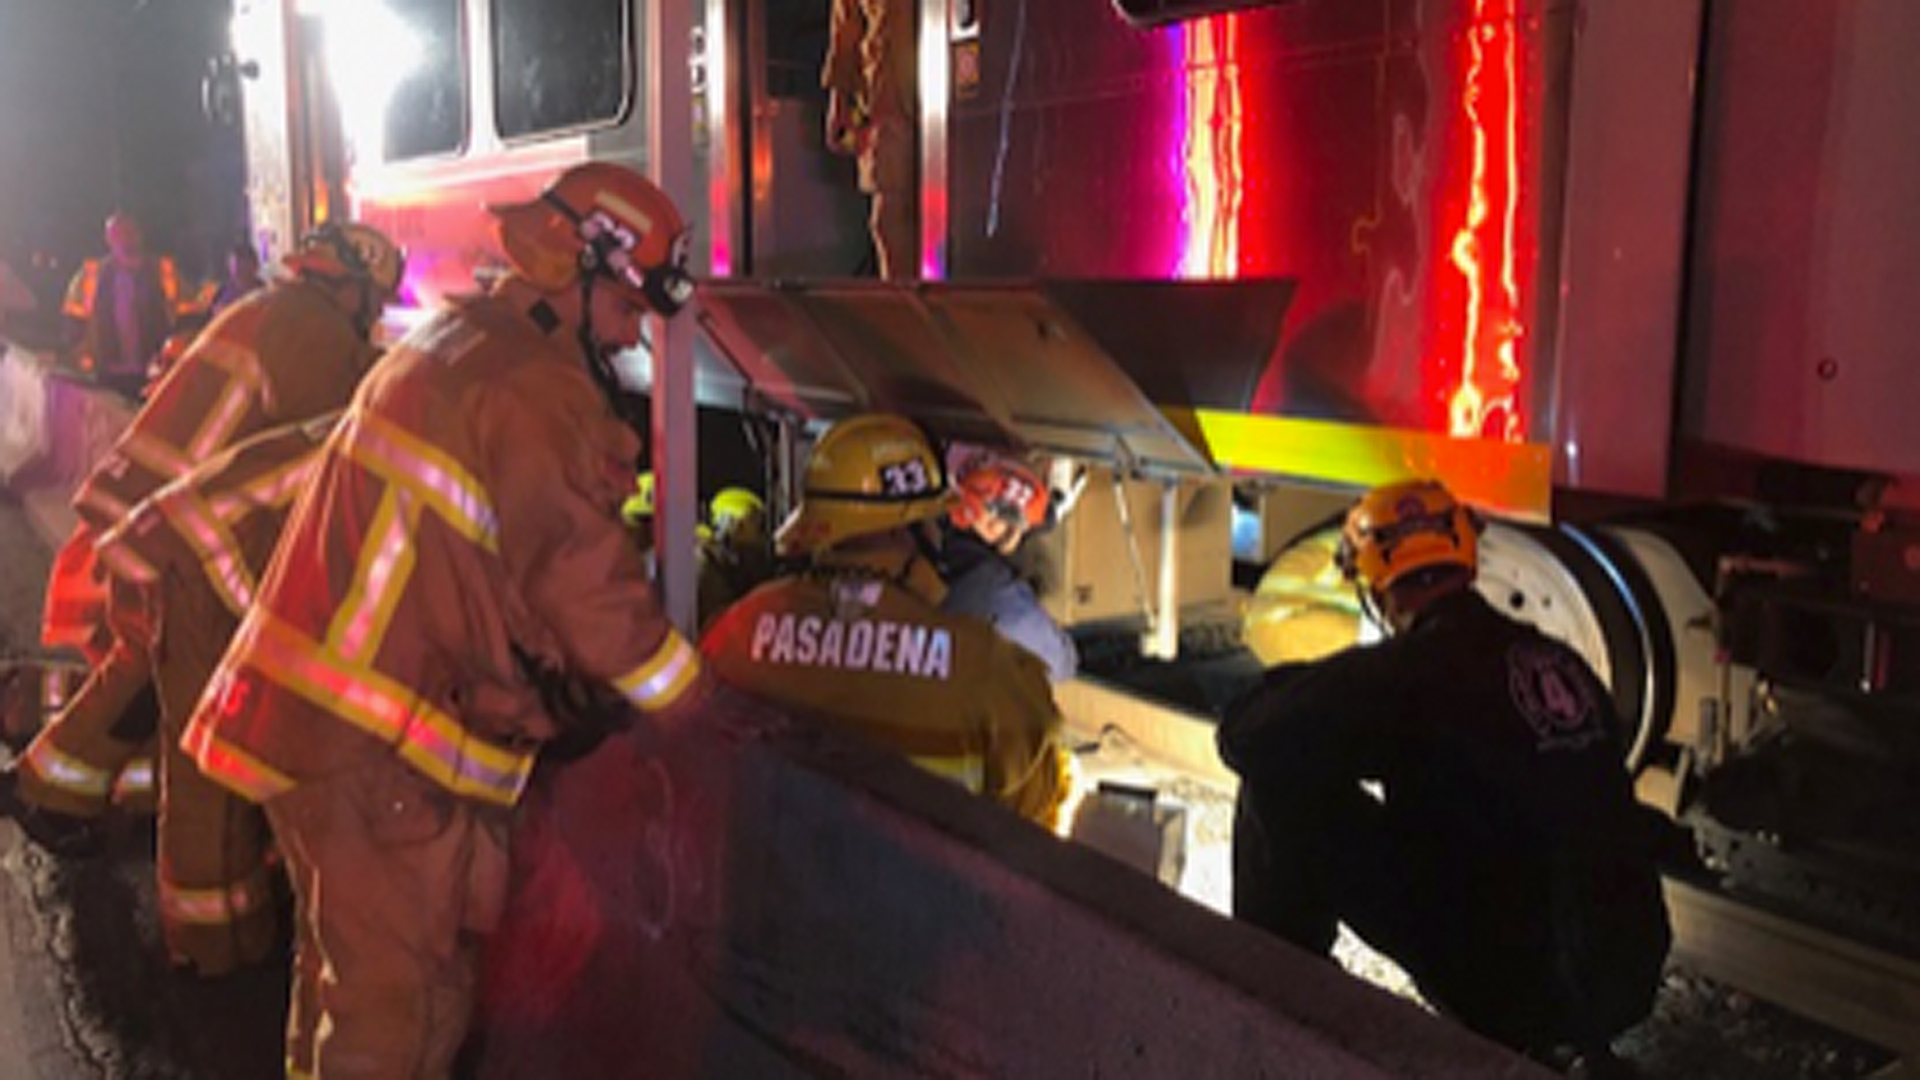 Pasadena Fire Department personnel work to free a man from under a Gold Line train on Oct. 18, 2019. (Credit: Pasadena Fire Department)